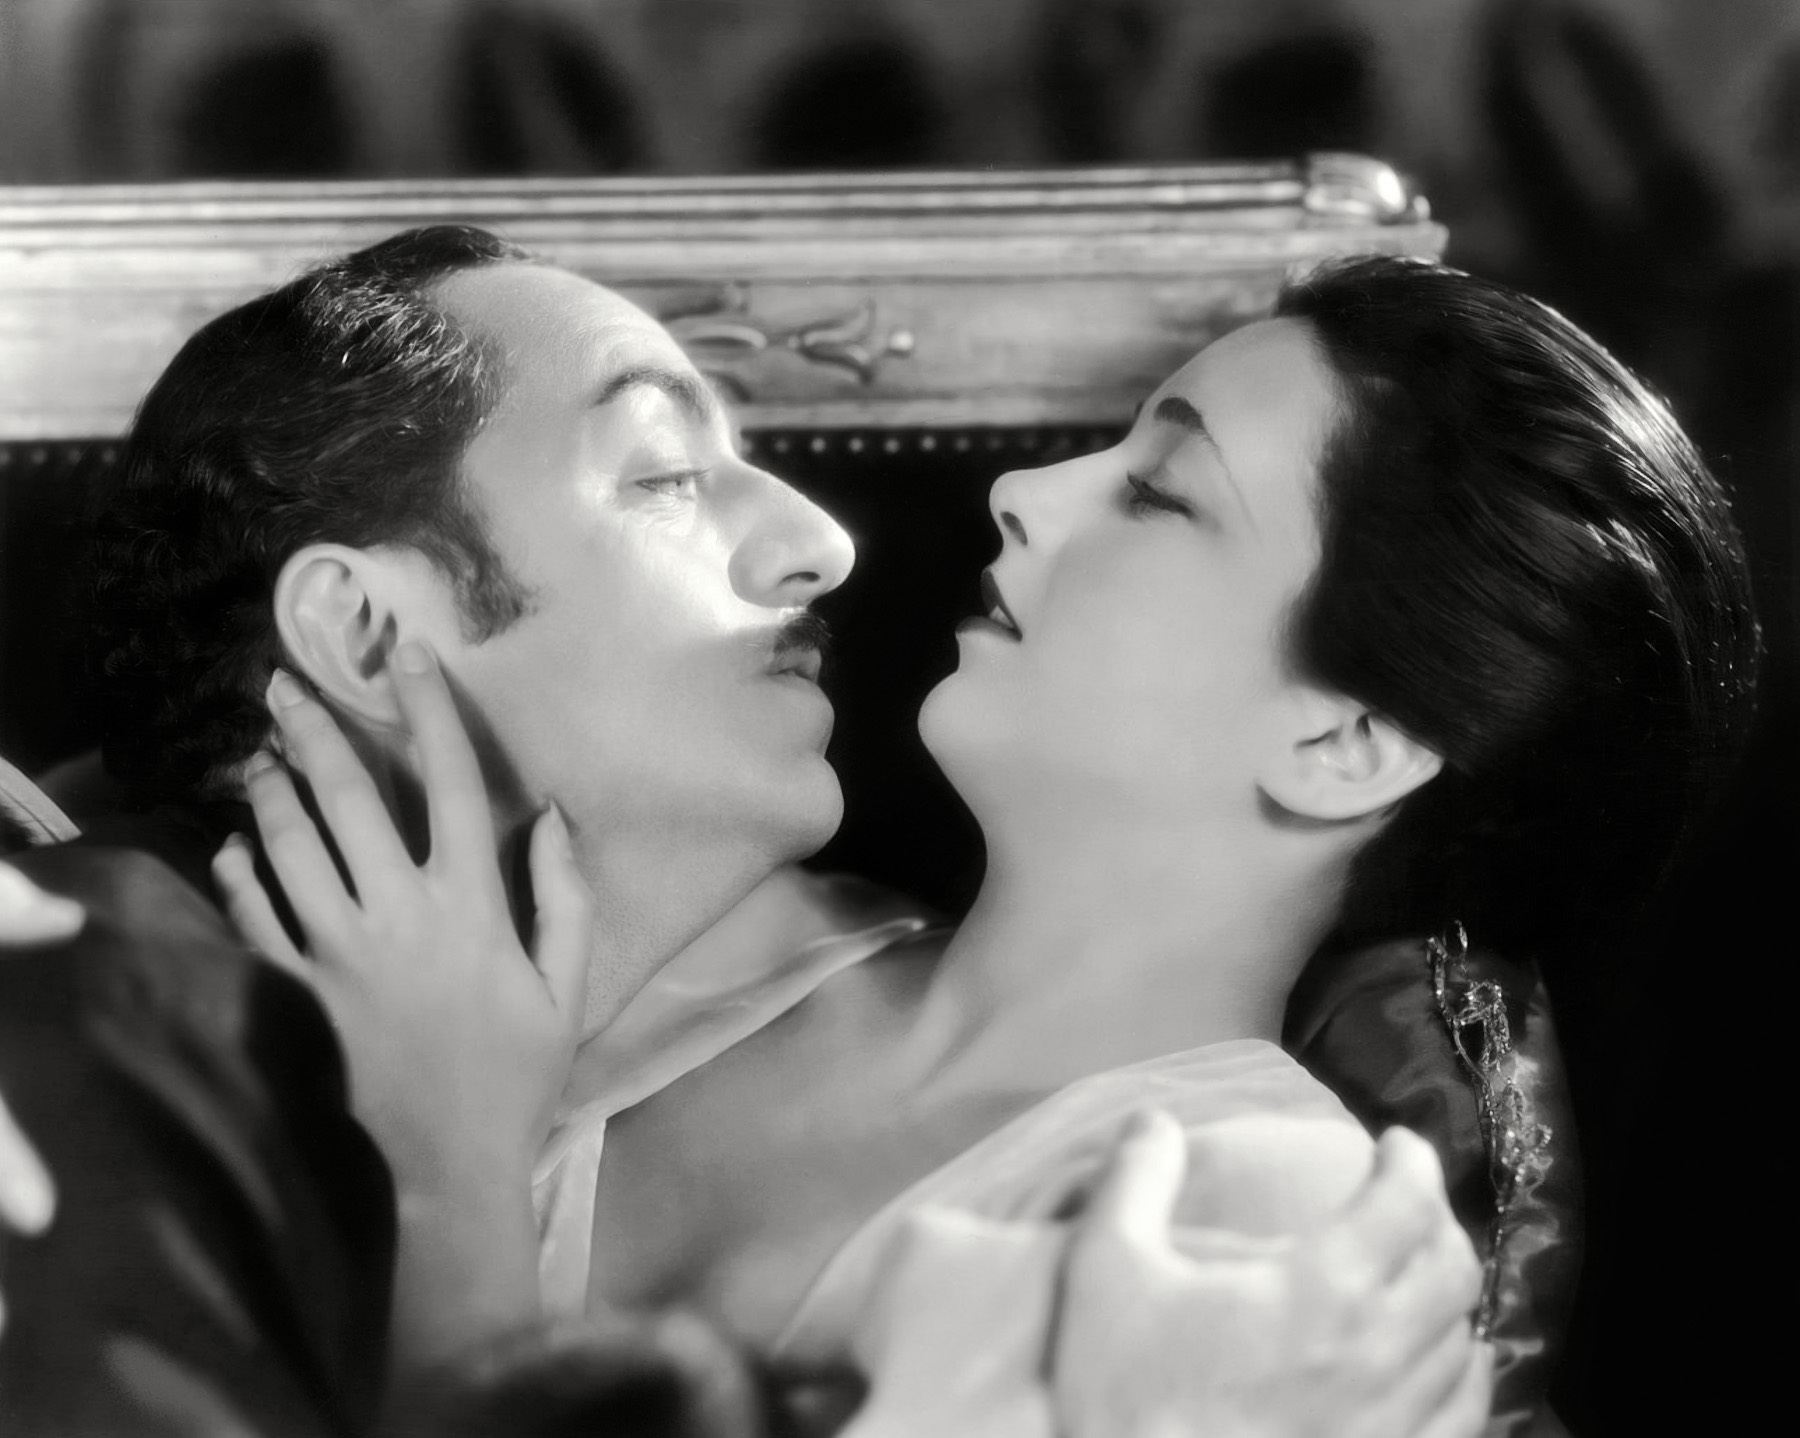 William Powell and Kay Francis in Behind the Make-Up (1930)